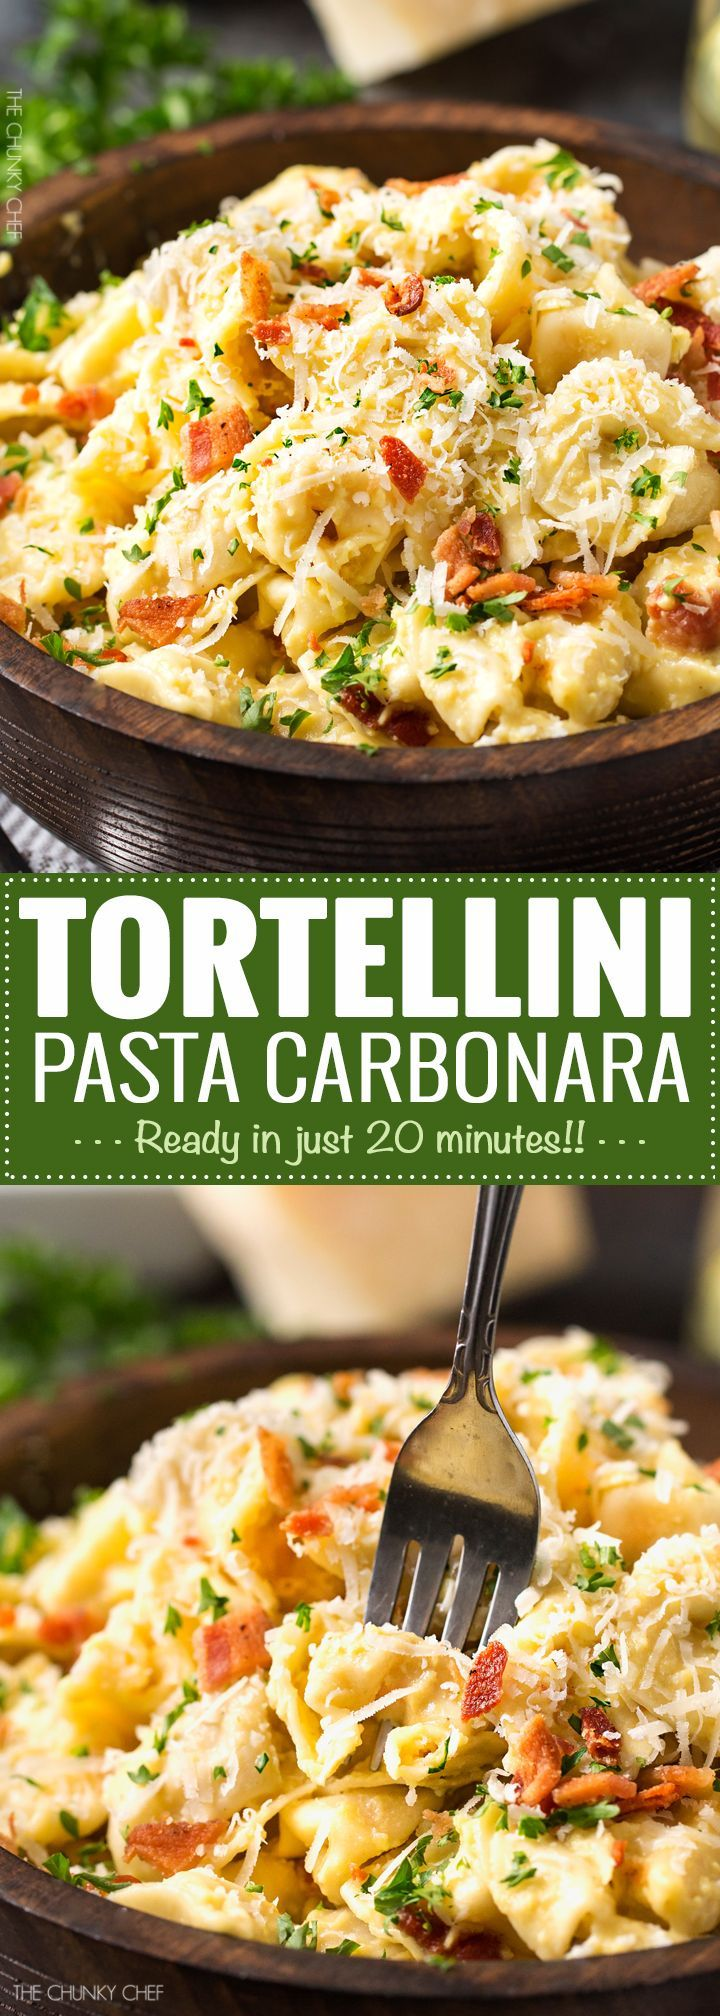 20 Minute Tortellini Pasta Carbonara   Cheese tortellini pasta is coated in a rich carbonara sauce, sprinkled with bacon and